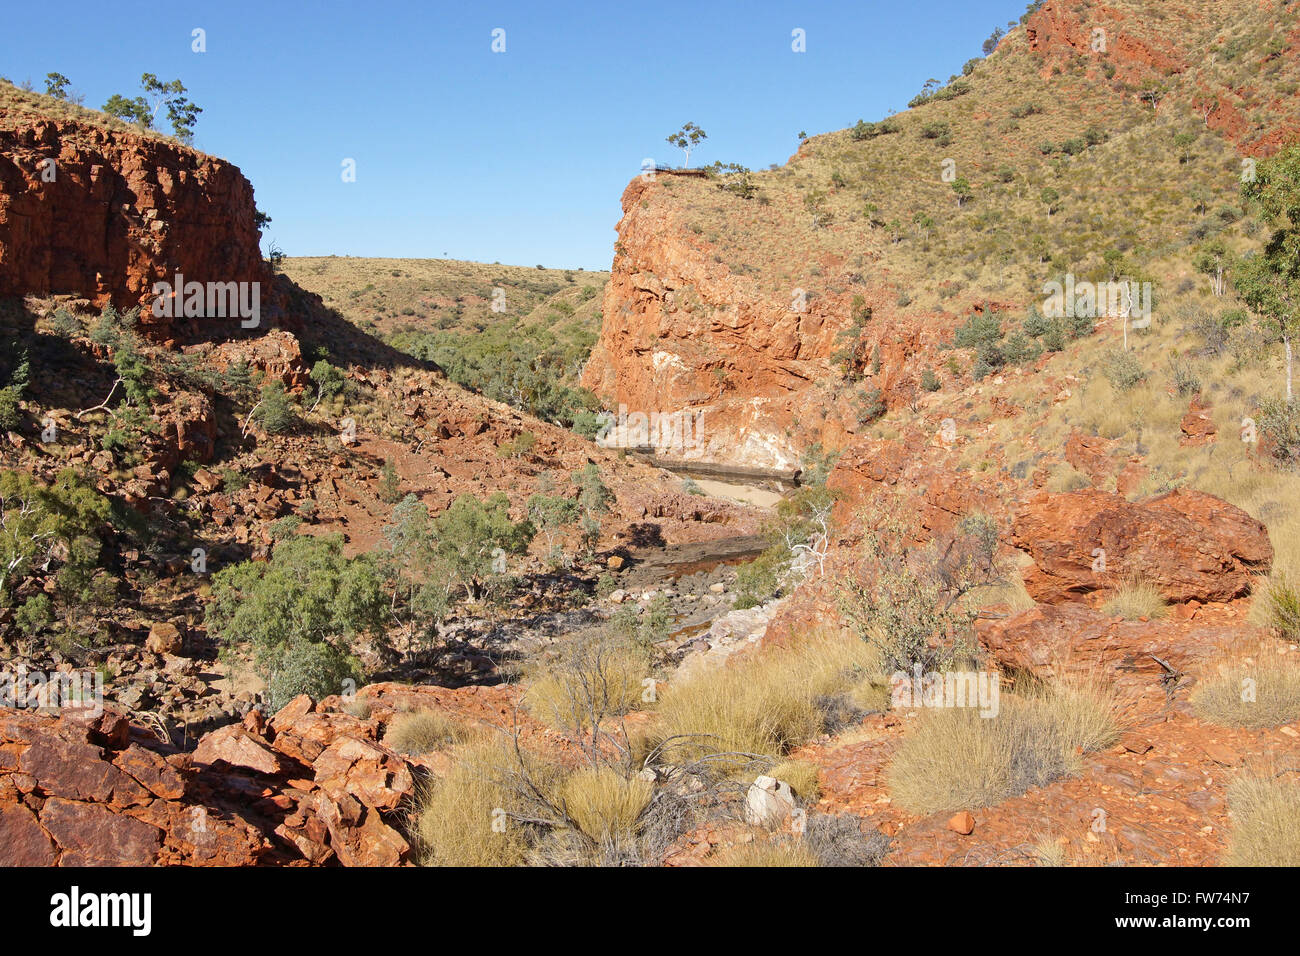 ALICE SPRINGS, AUSTRALIA - Mai 1, 2015: Ormiston Gorge, Landscape of West MacDonnell National Park on May 1, 2015 - Stock Image